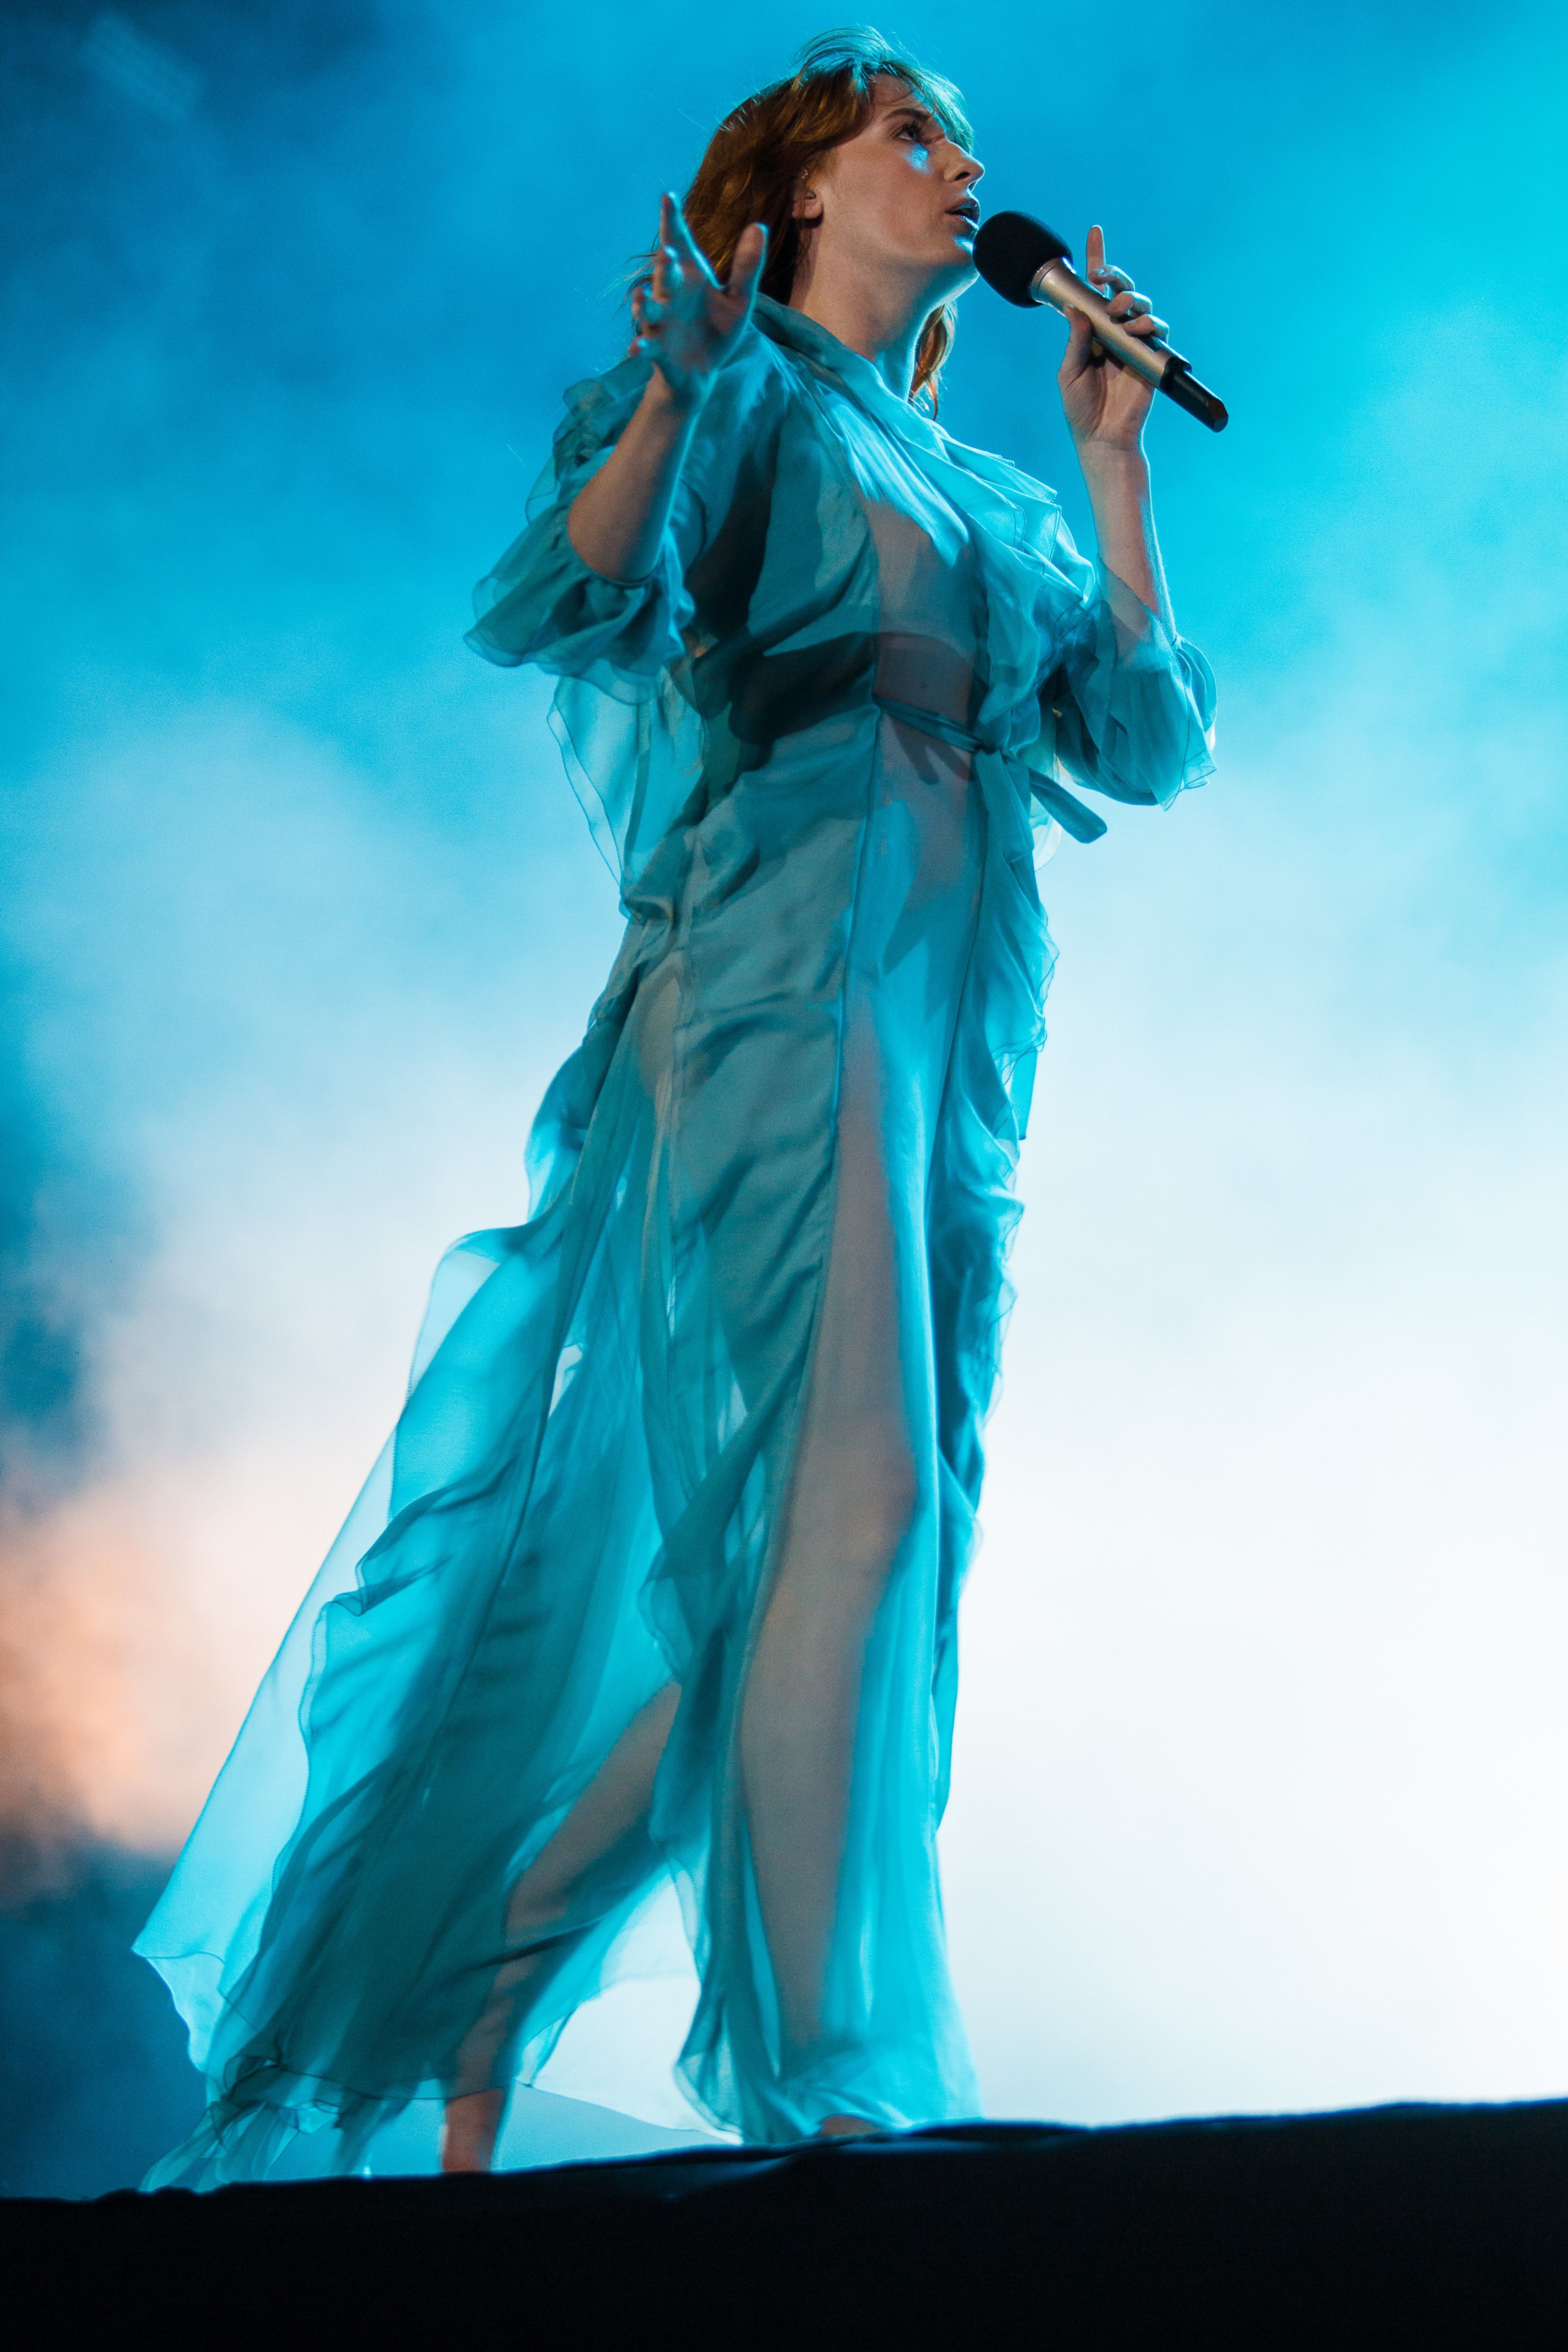 Gucci to dress Florence Welch on tour